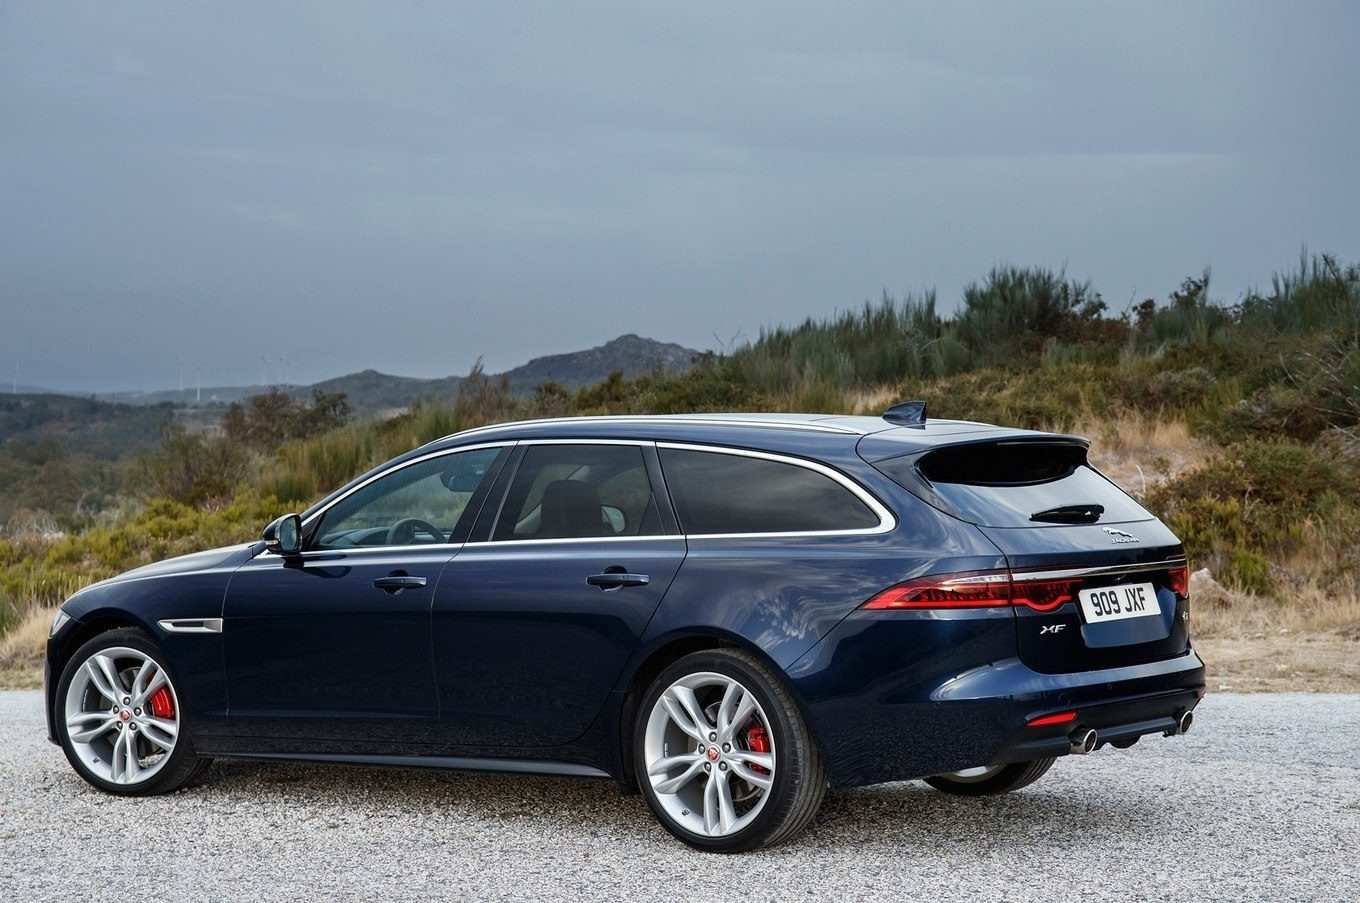 48 Best Review 2019 Jaguar Wagon Style with 2019 Jaguar Wagon